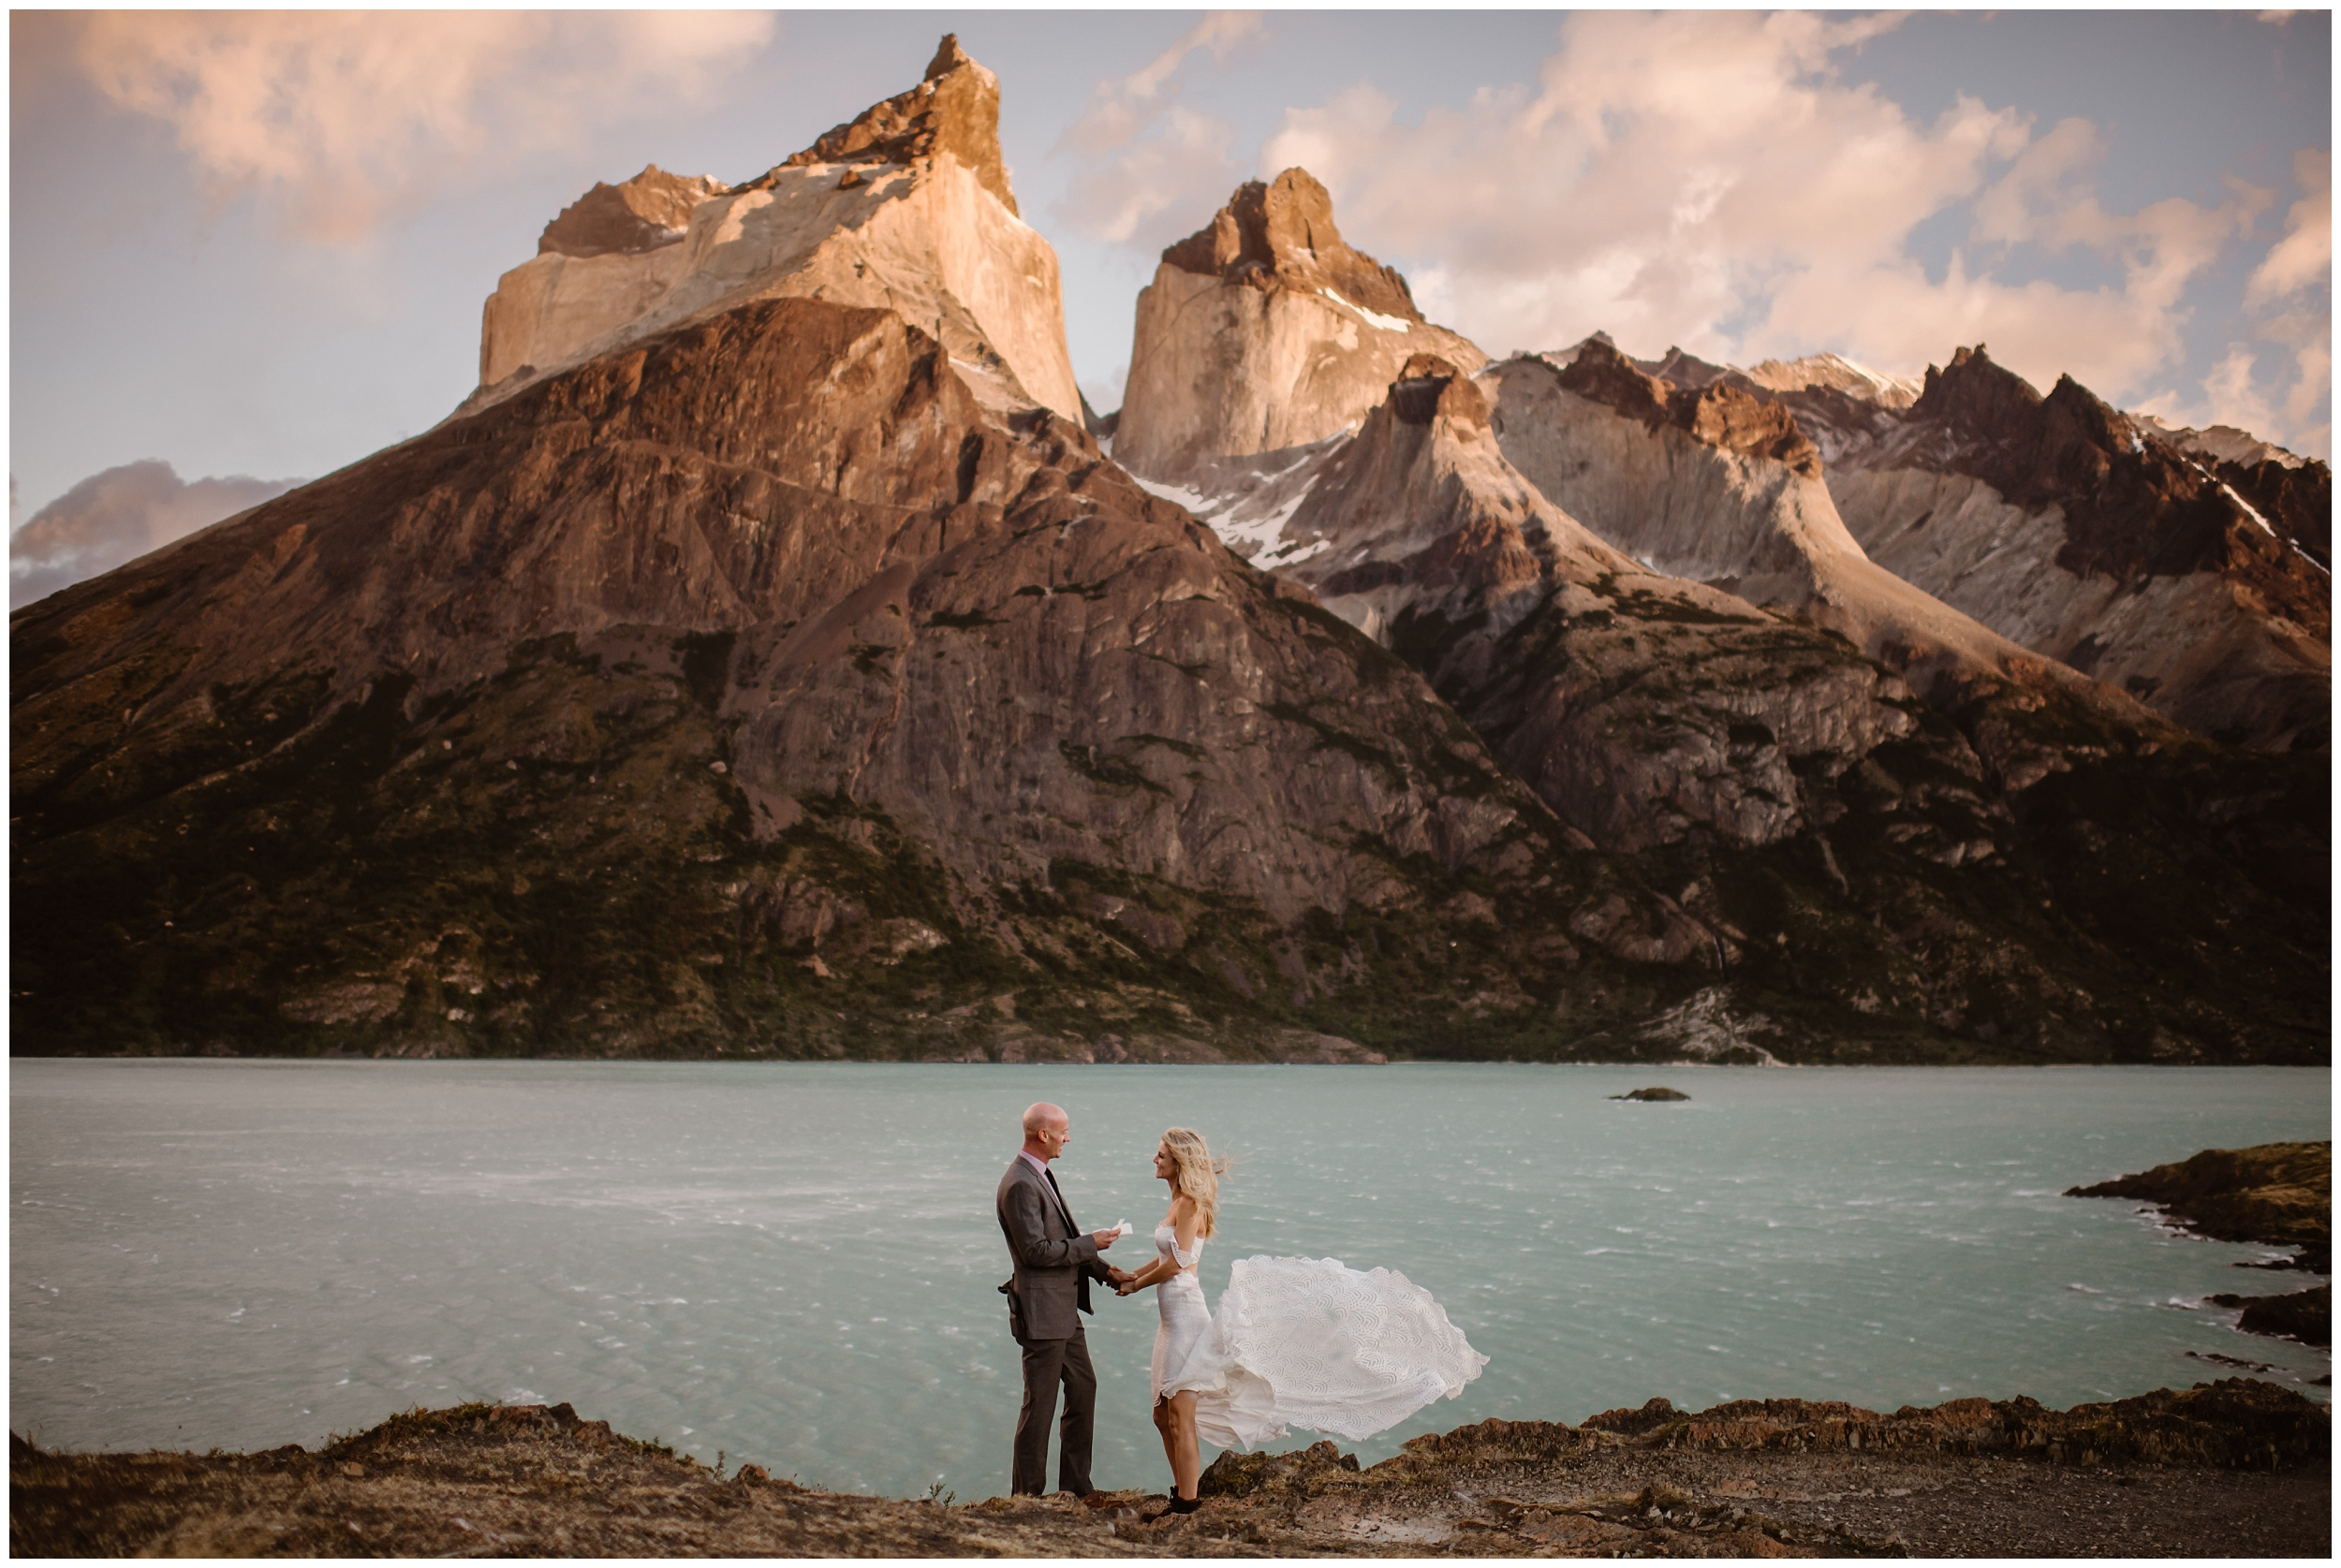 A bride and groom stand in front of a turquoise alpine lake with jagged, dramatic mountains in the background. The couple is having their wedding ceremony in this adventurous location. The brides dress flies up in the wind as her groom read his vows to her. These elopement pictures were captured by Adventure Instead, an elopement wedding photographer.